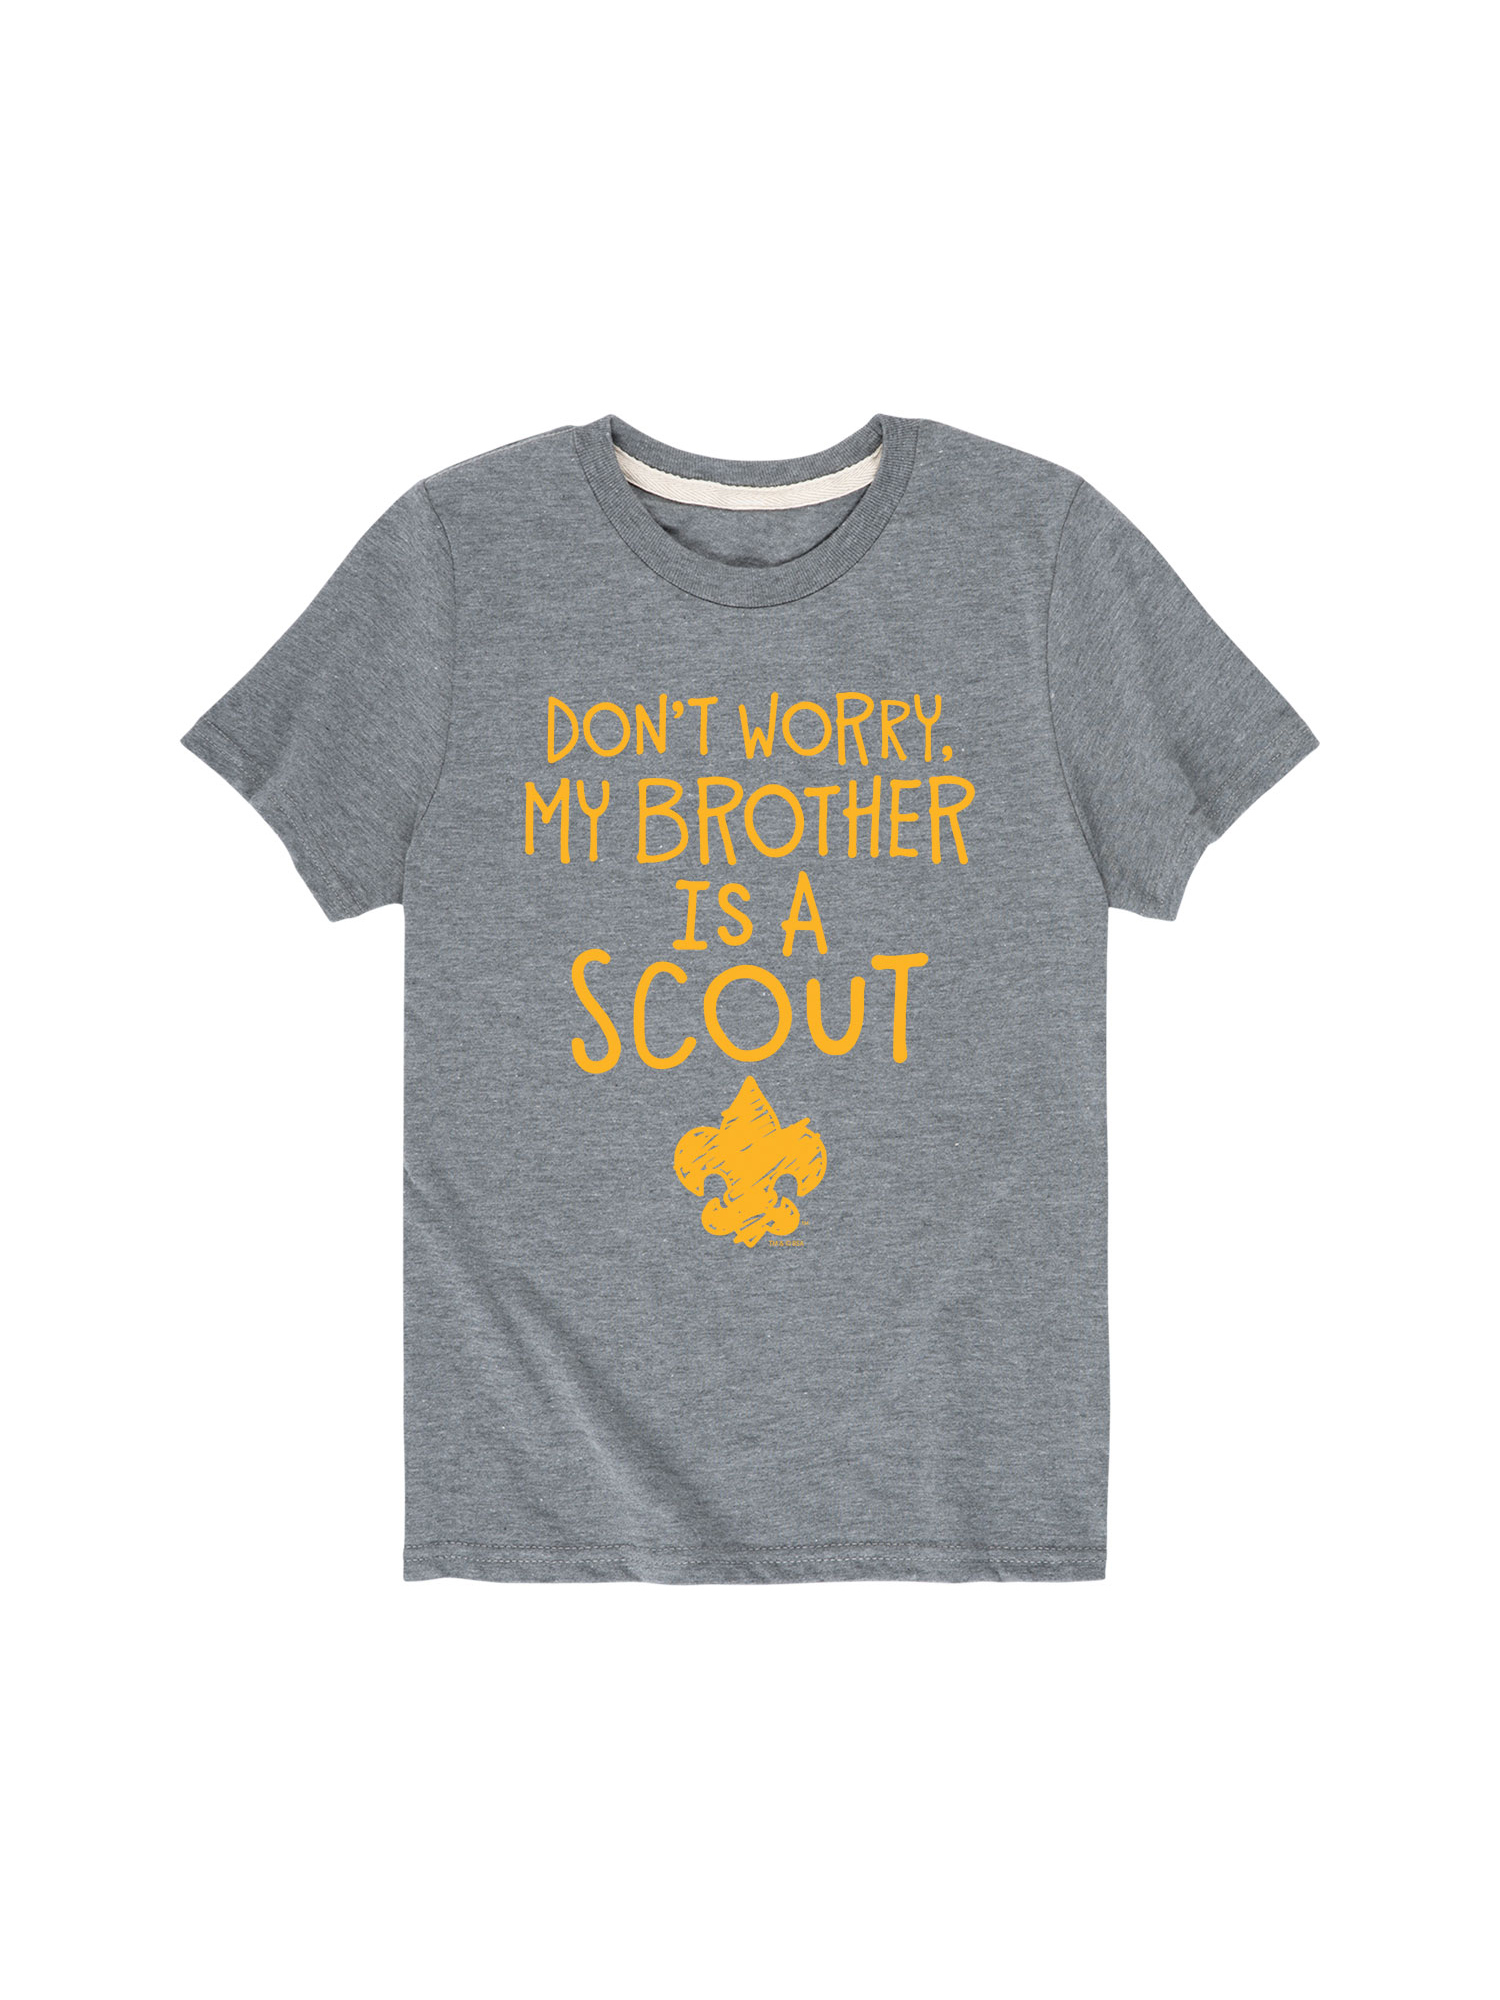 Boy Scouts of America Brother Is A Scout - Toddler Short Sleeve Tee